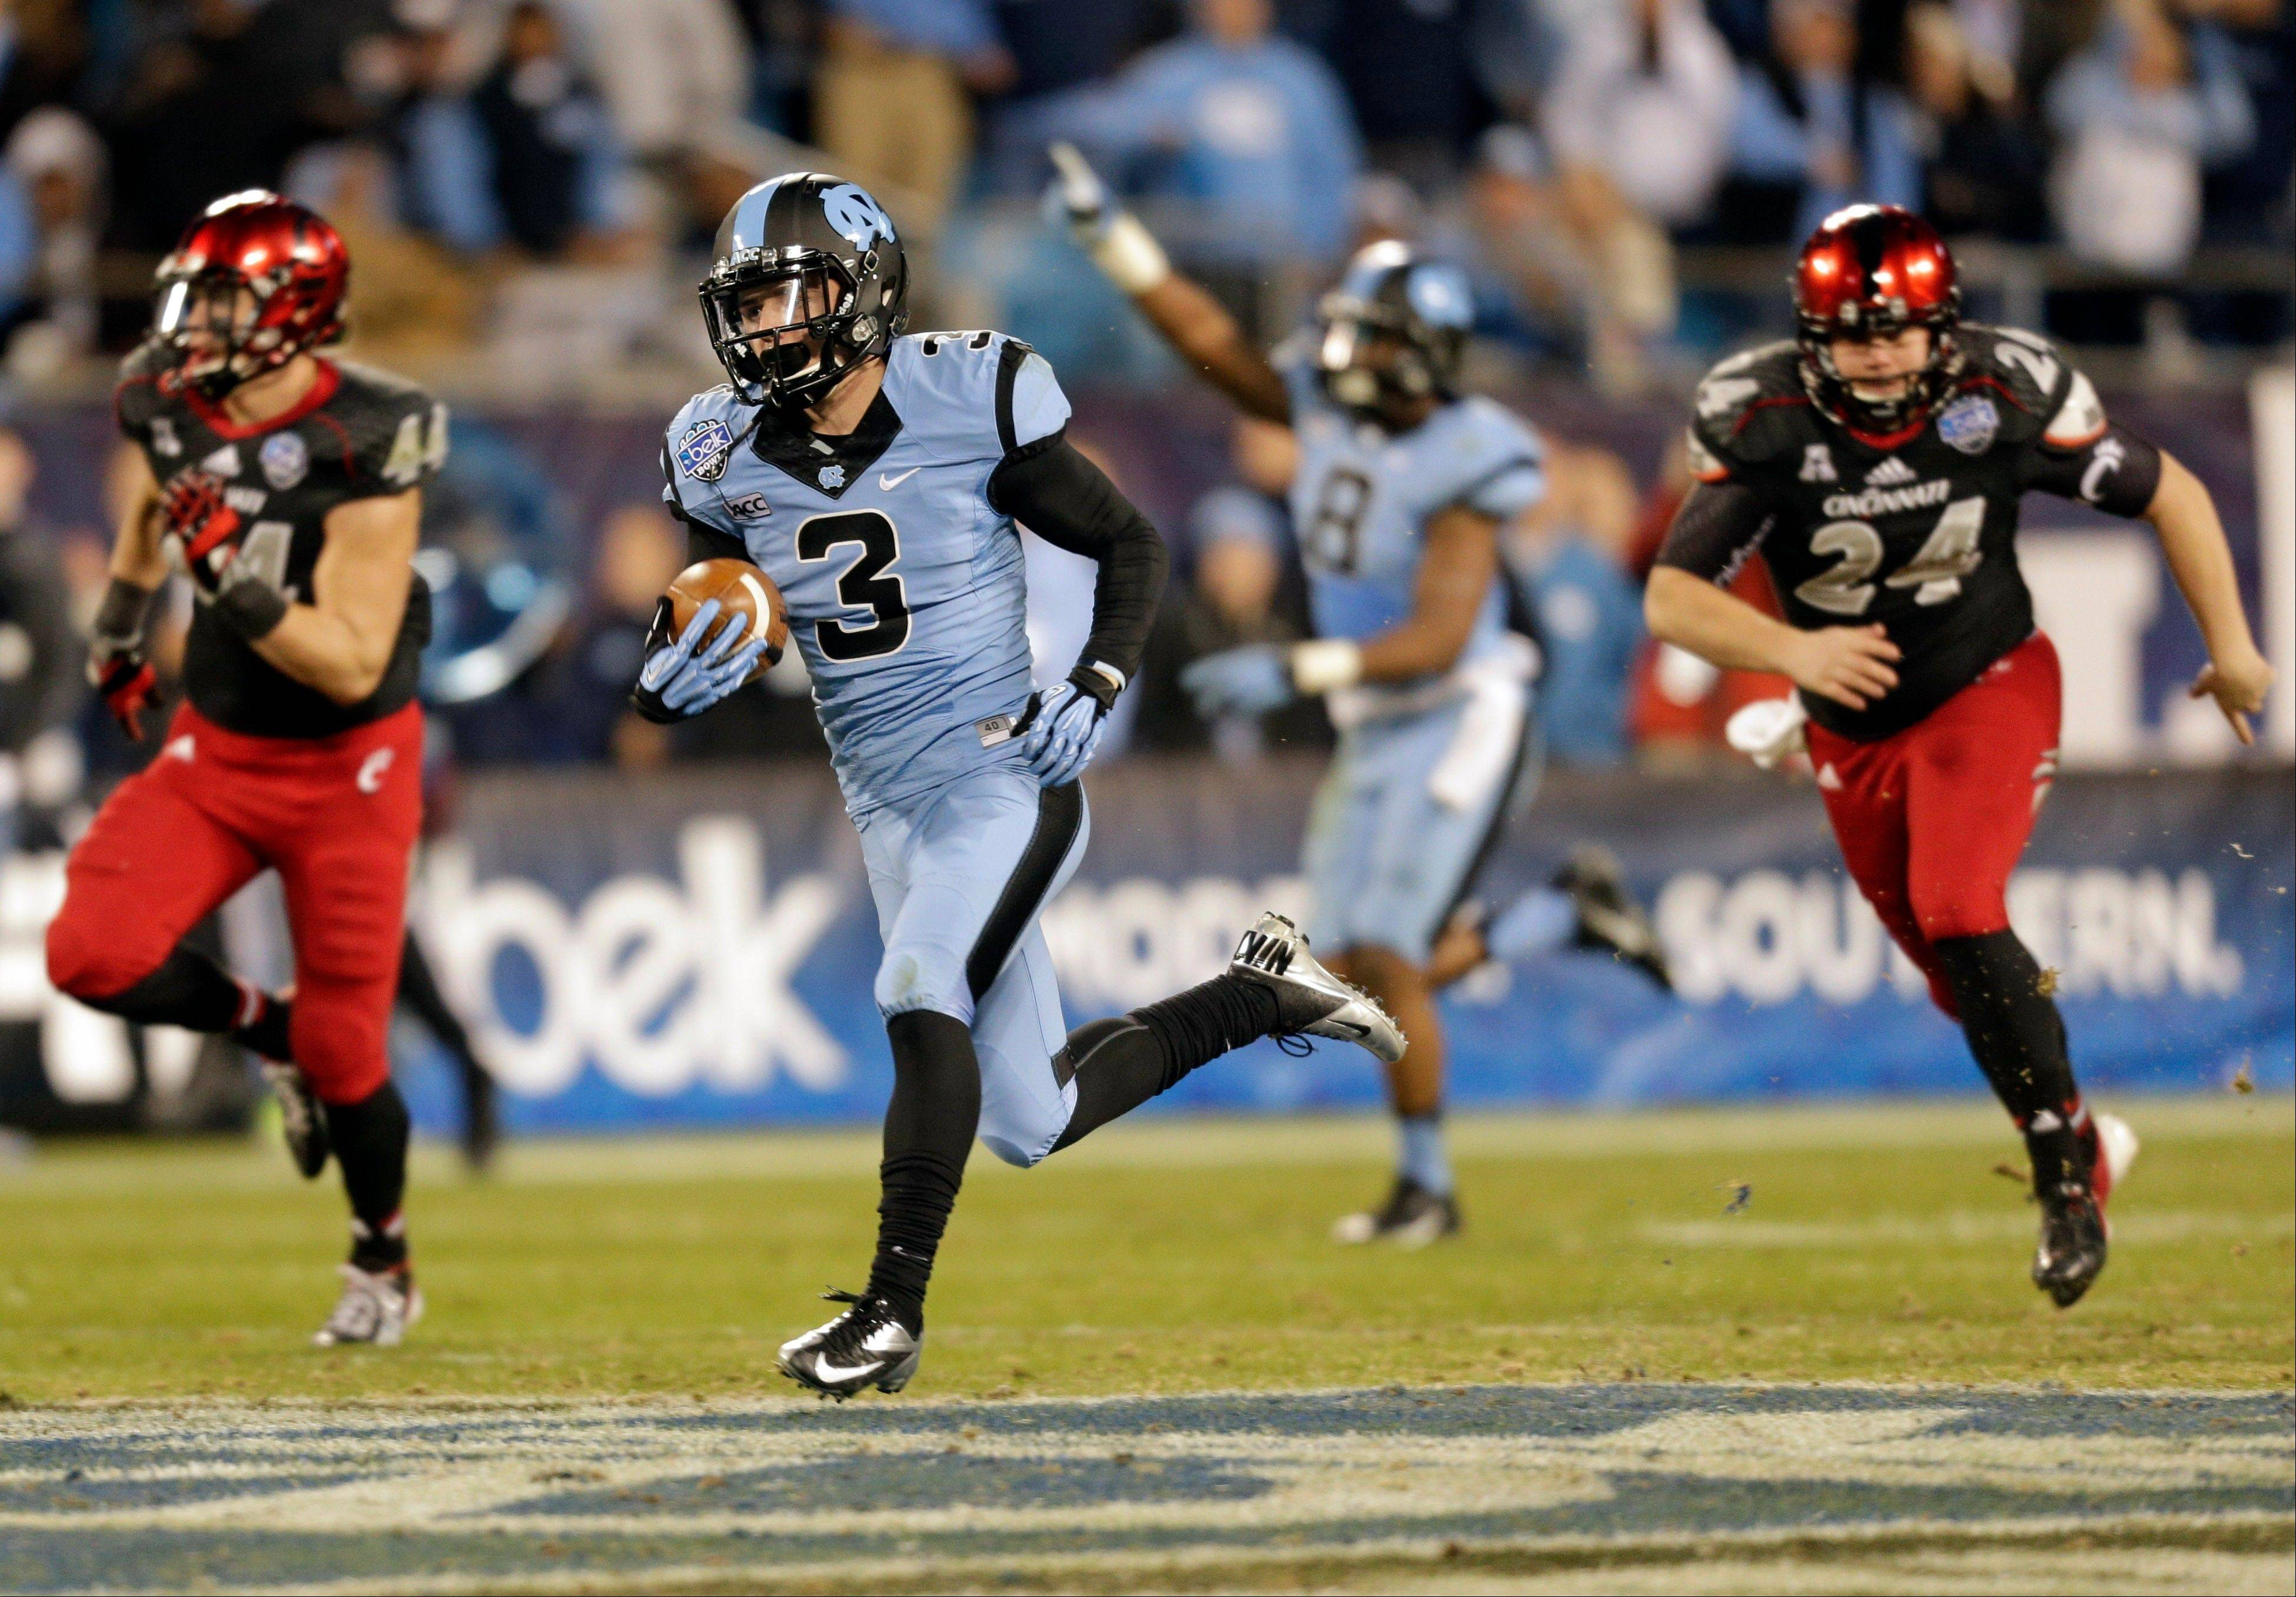 North Carolina's Ryan Switzer (3) returns a punt for a touchdown past Cincinnati's John Lloyd (24) and Corey Mason (44) during the second half of the Belk Bowl NCAA college football game, Saturday, Dec. 28, 2013, in Charlotte, N.C. (AP Photo/Chuck Burton)